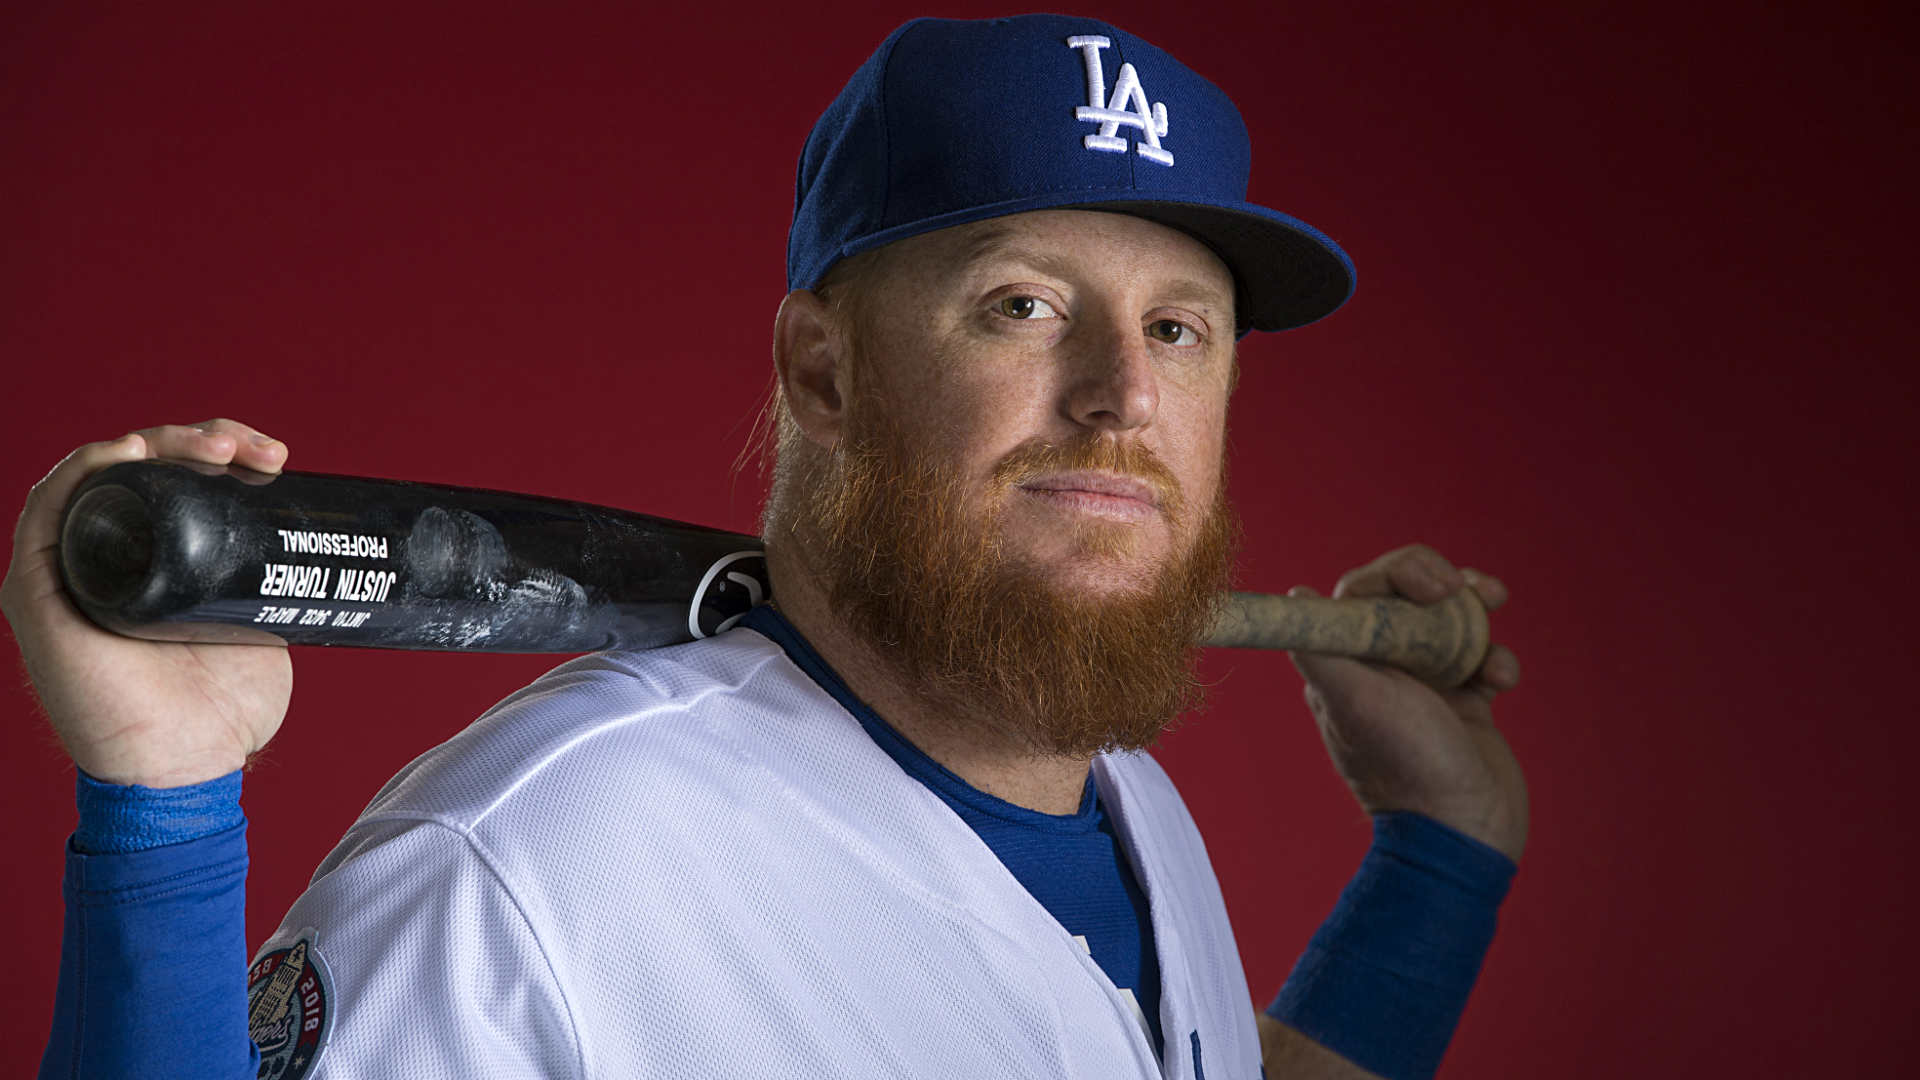 Justin Turner: Breaks wrist vs. A's